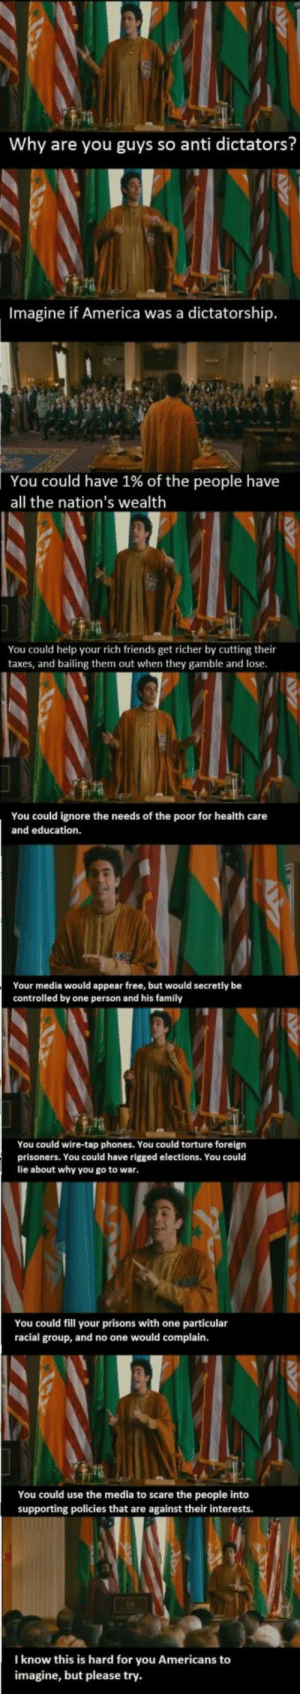 This post is Aladeen.: Why are you guys so anti dictators?  Imagine if America was a dictatorship  You could have 1% of the people have  all the nation's wealth  You could help your rich friends get richer by cutting their  taxes, and bailing them out when they gamble and lose  You could ignore the needs of the poor for health care  and education.  Your media would appear free, but would secretly be  controlled by one person and his family  You could wire-tap phones. You could torture foreign  prisoners. You could have rigged elections. You could  lie about why you go to war  You could fill your prisons with one particular  racial group, and no one would complain.  You could use the media to scare the people into  supporting policies that are against their interests.  I know this is hard for you Americans to  imagine, but please try This post is Aladeen.